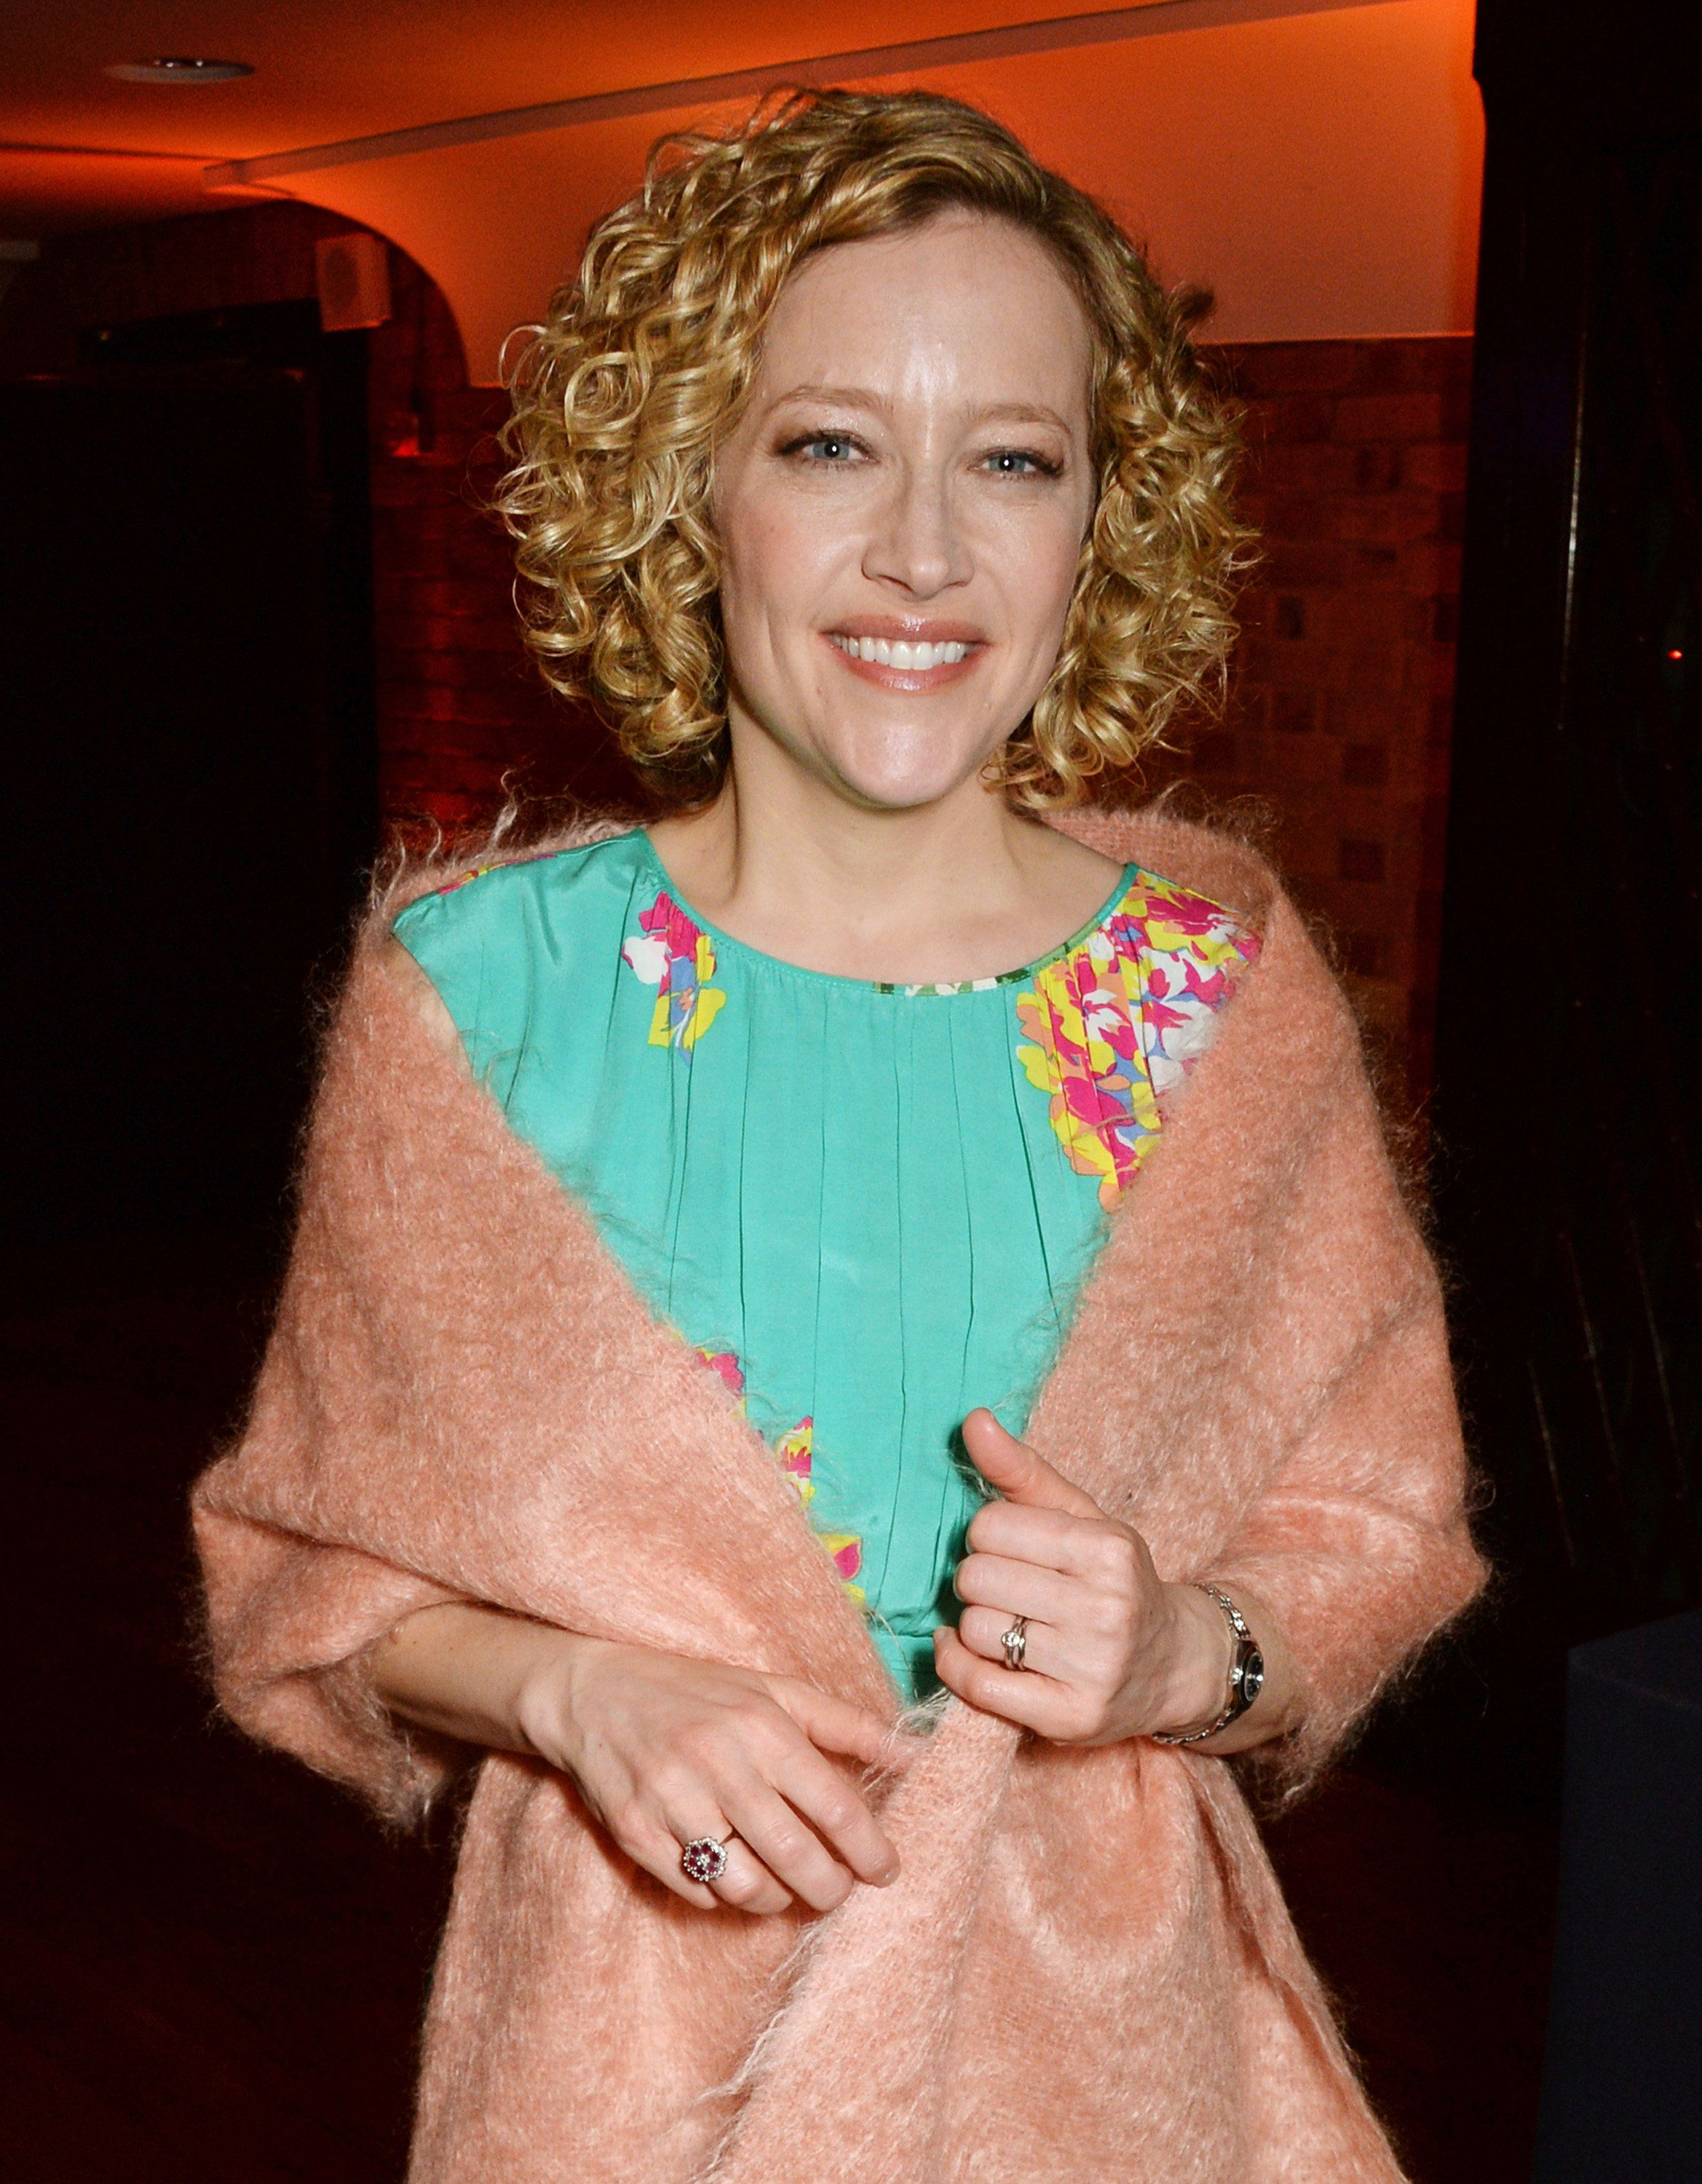 Cathy Newman Says She Was Sexually Harassed And Humiliated At Top Private